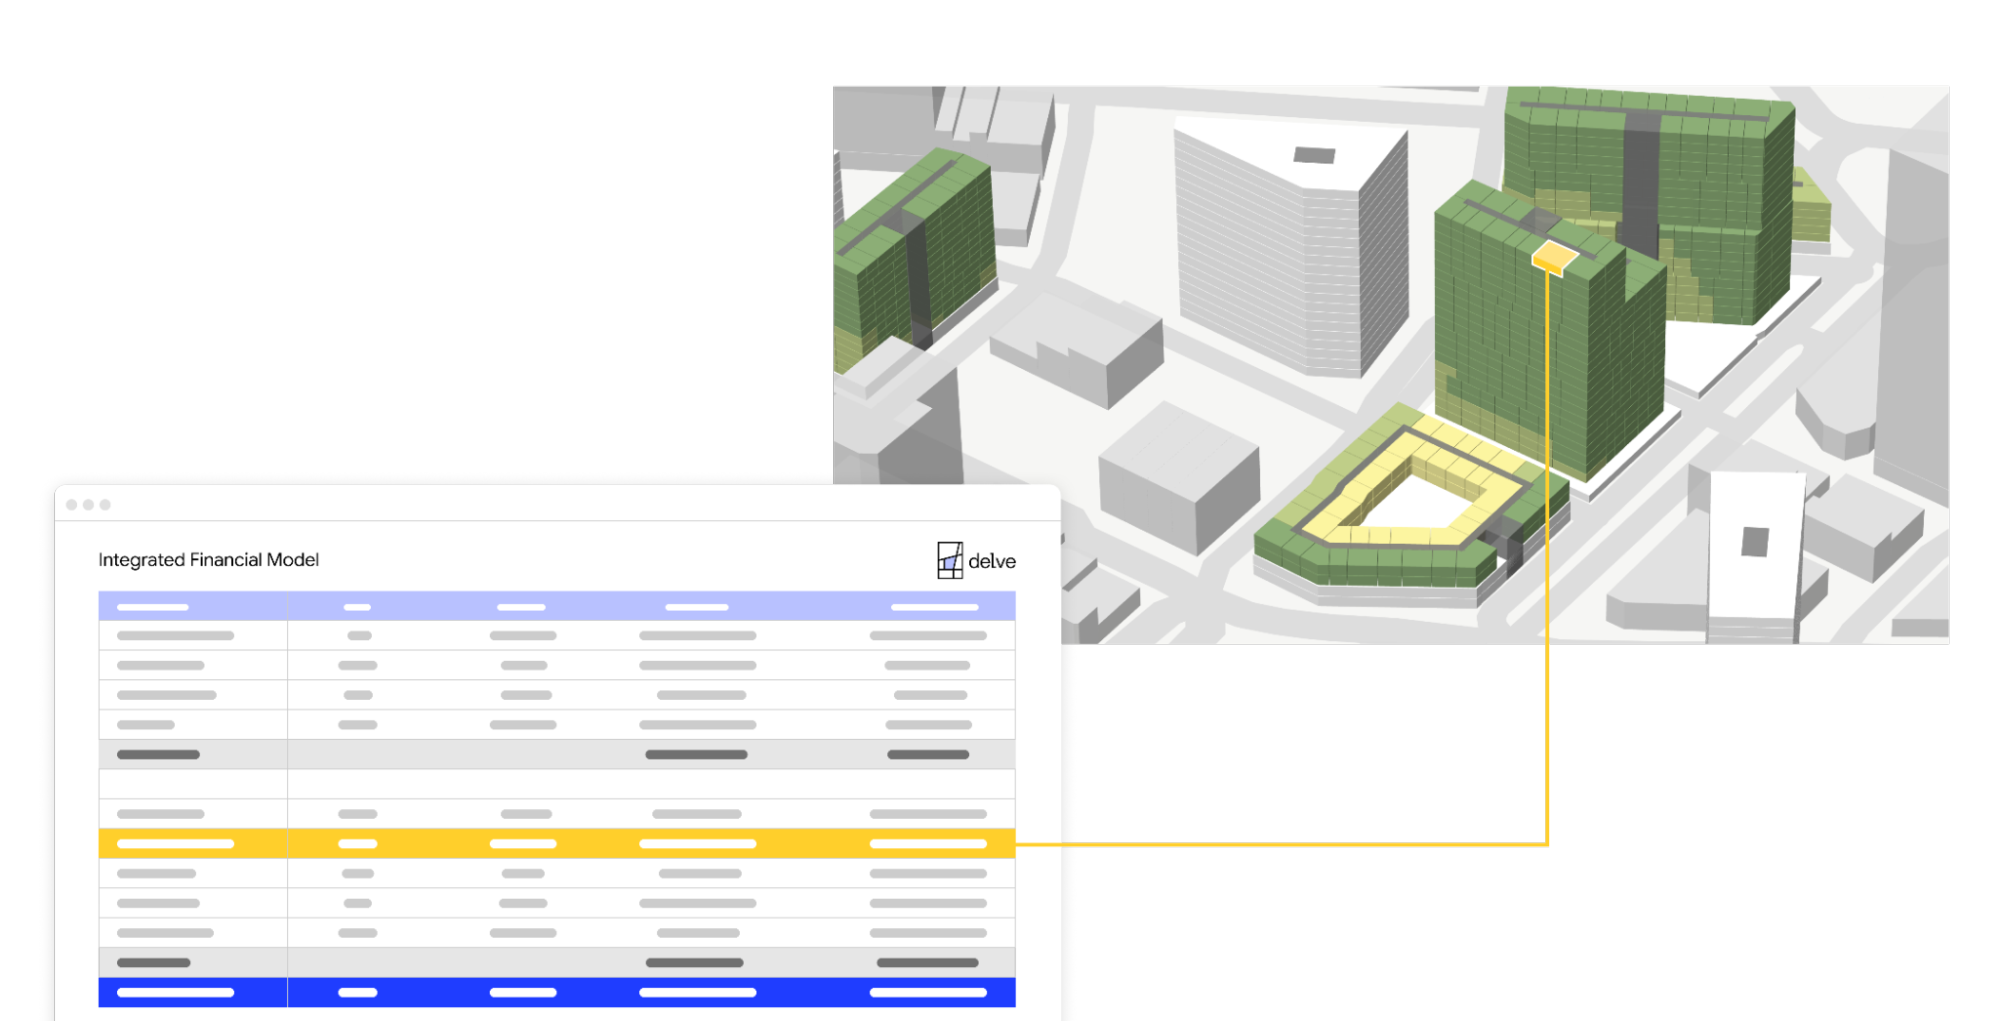 Two screengrabs: one showing a spreadsheet and the other showing an aerial view of an urban planning project.